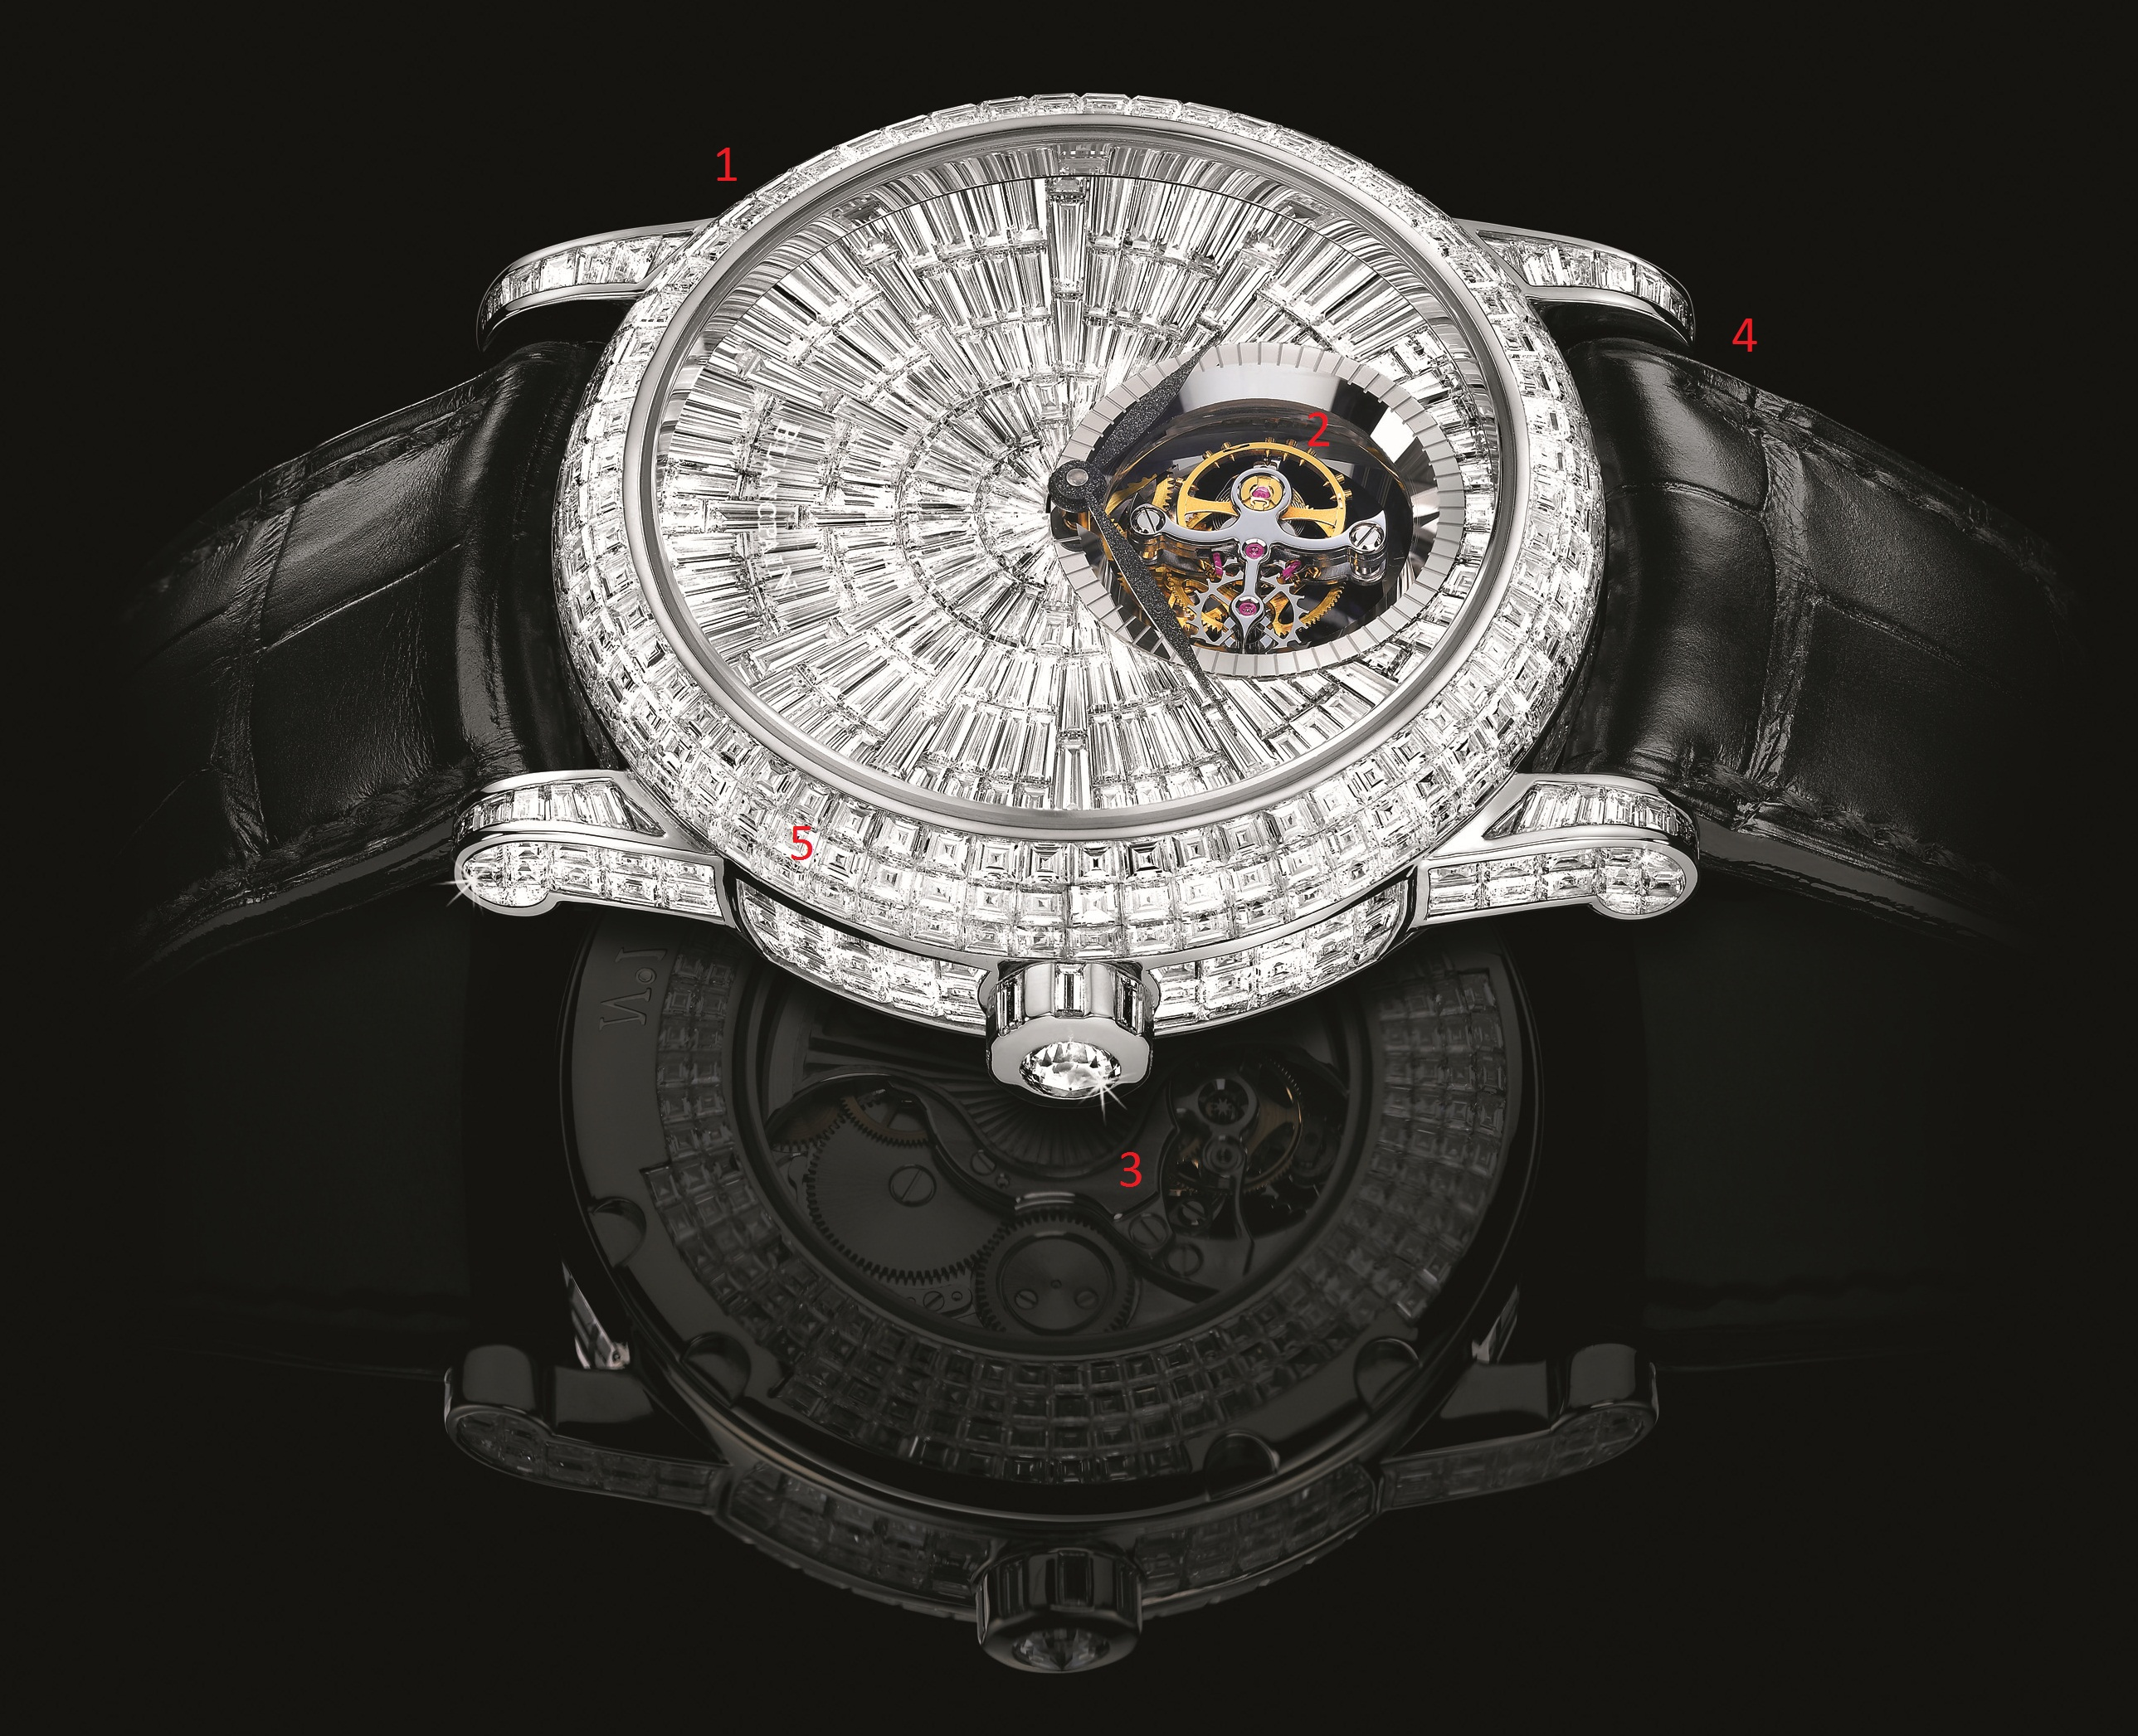 Blancpain 2926_5222_55b with POINTS